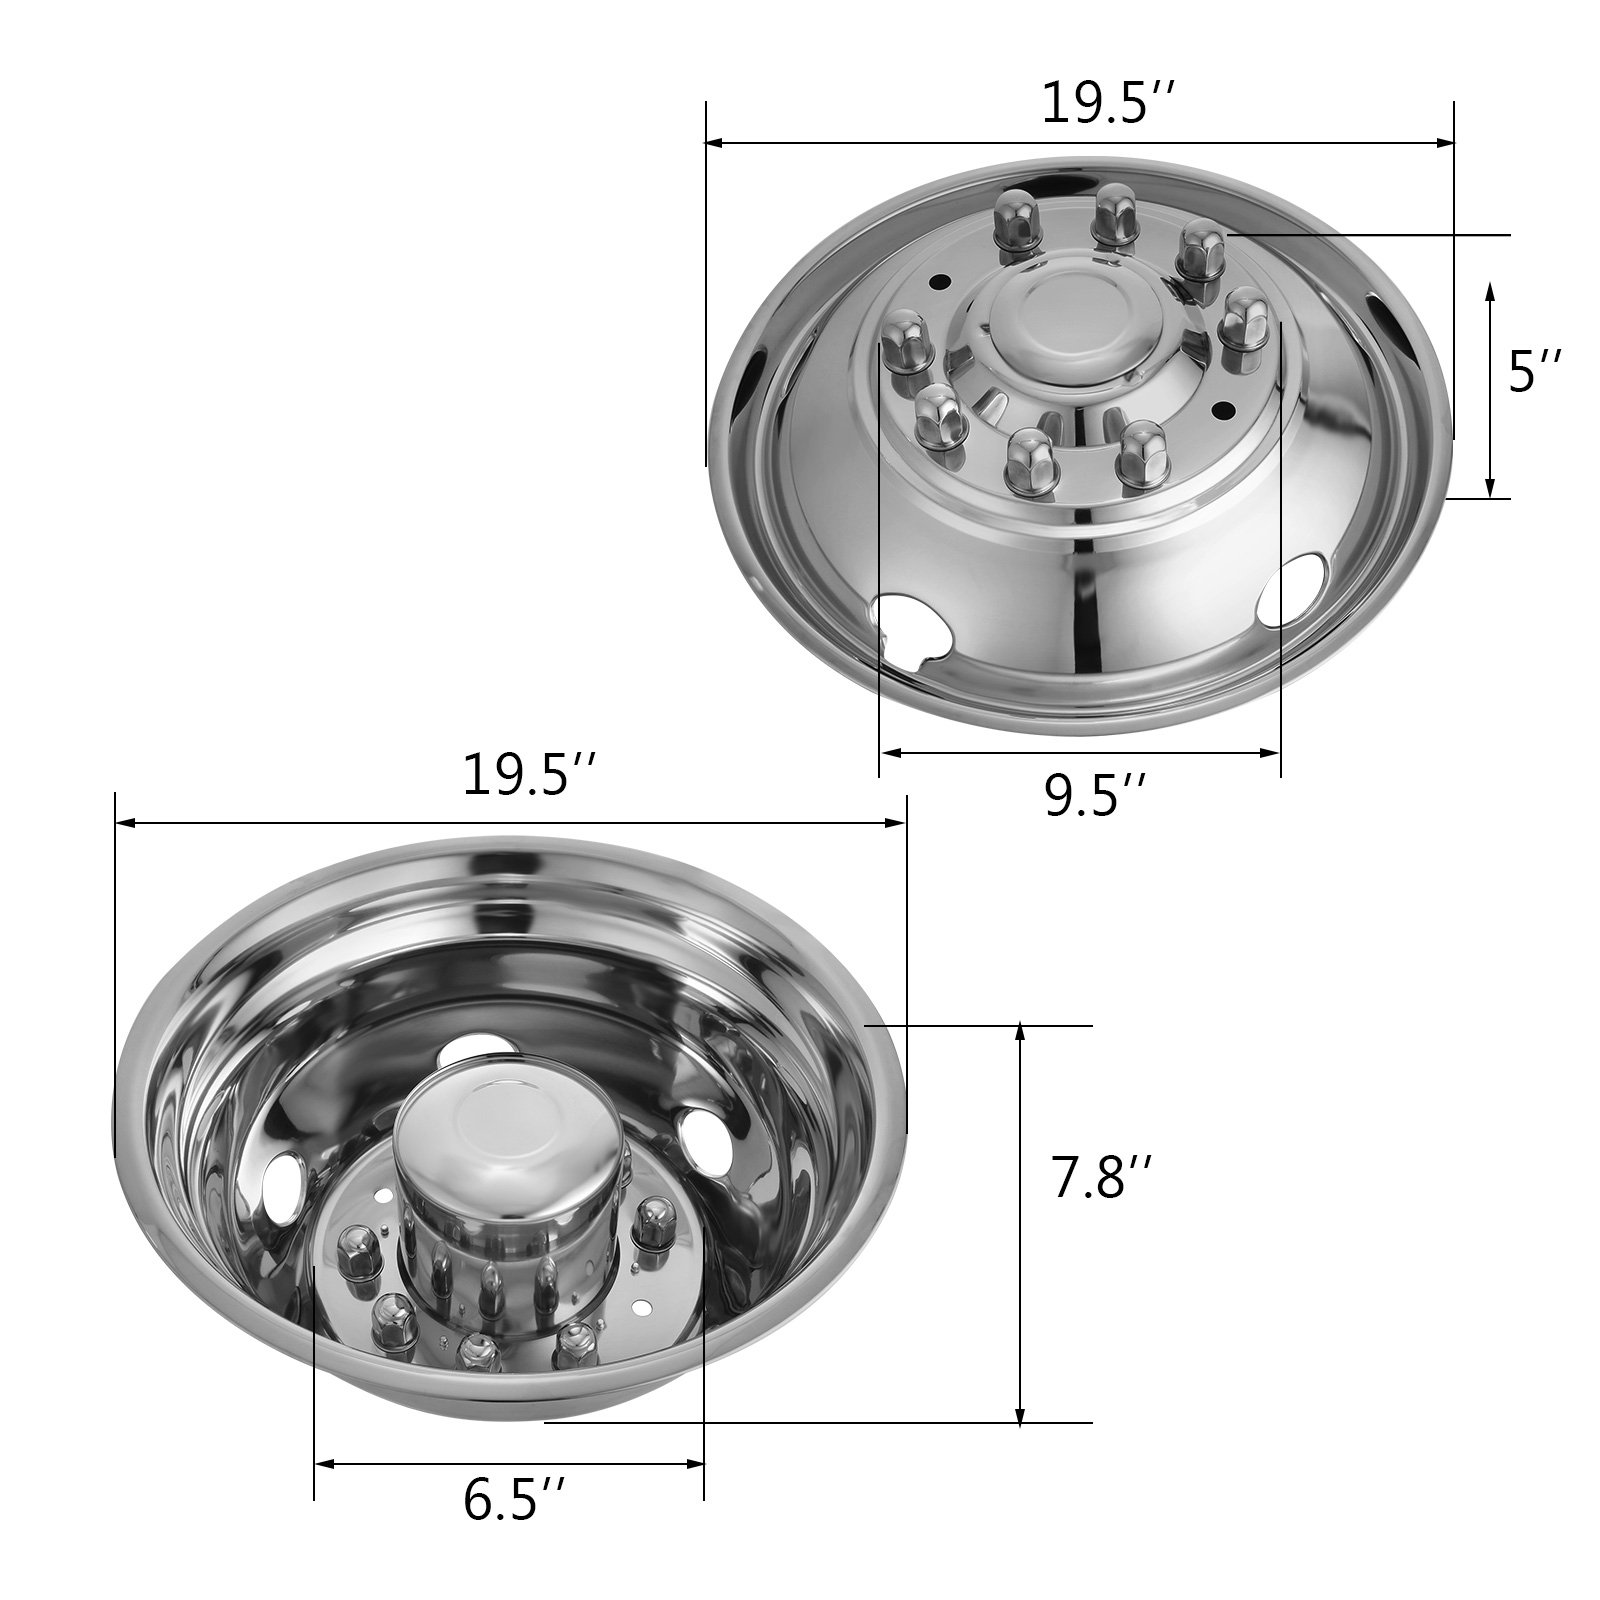 Mophorn 4 PCS of Wheel Simulators 19.5 Inch 10 Lug Hubcap Kit Fit for 2005-2017 Ford F450 - F550 2WD Trunk Polished Stainless Steel Bolt On Dually Wheel Cover Set (19.5'') by Mophorn (Image #2)